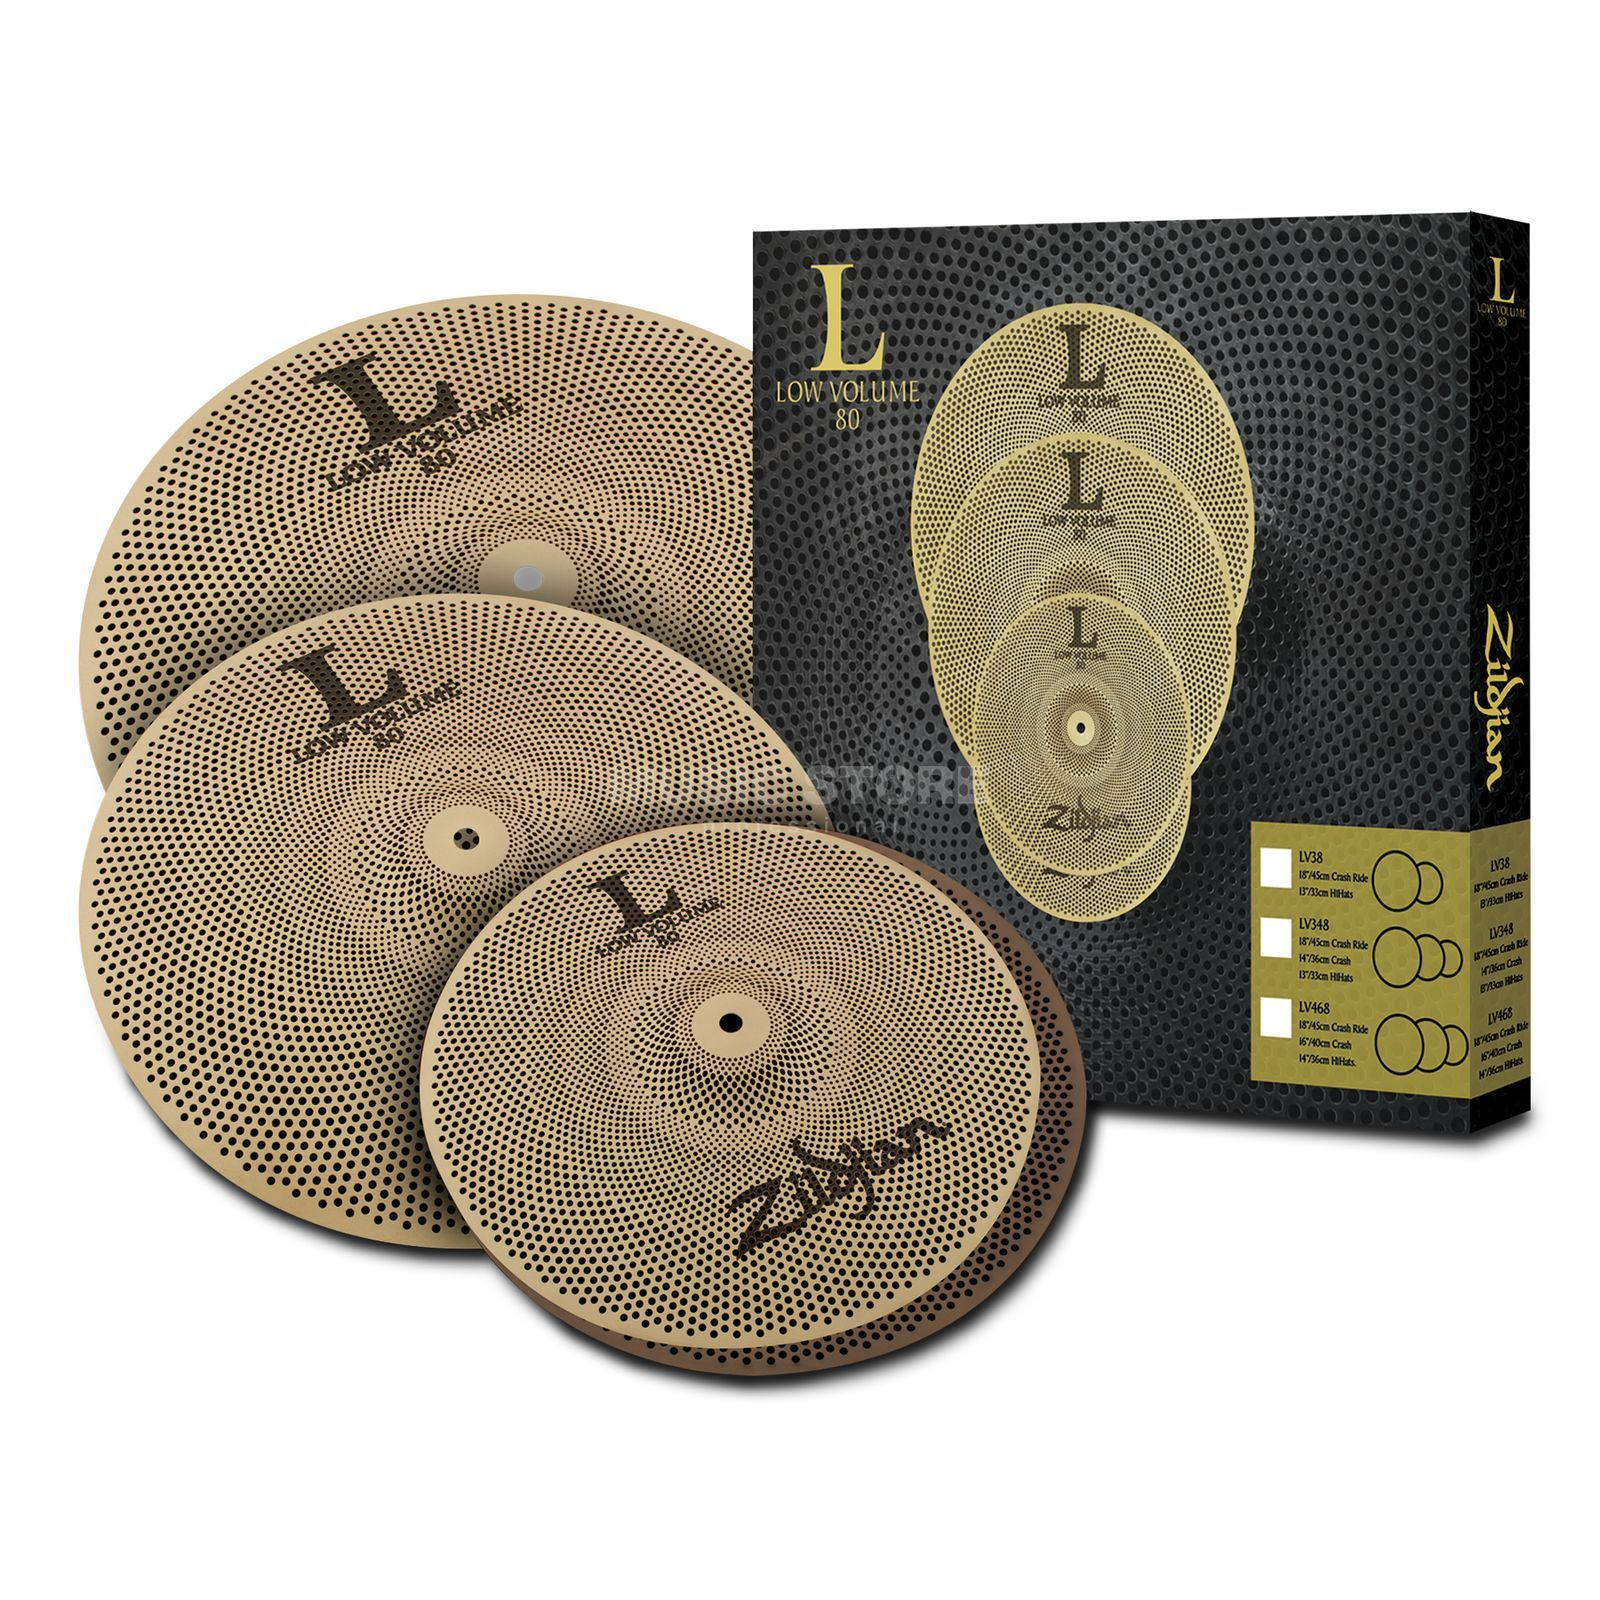 "Zildjian Low Volume Serie 468 Set, 14"" HiHat, 16"" Crash, 18"" Ride Produktbild"